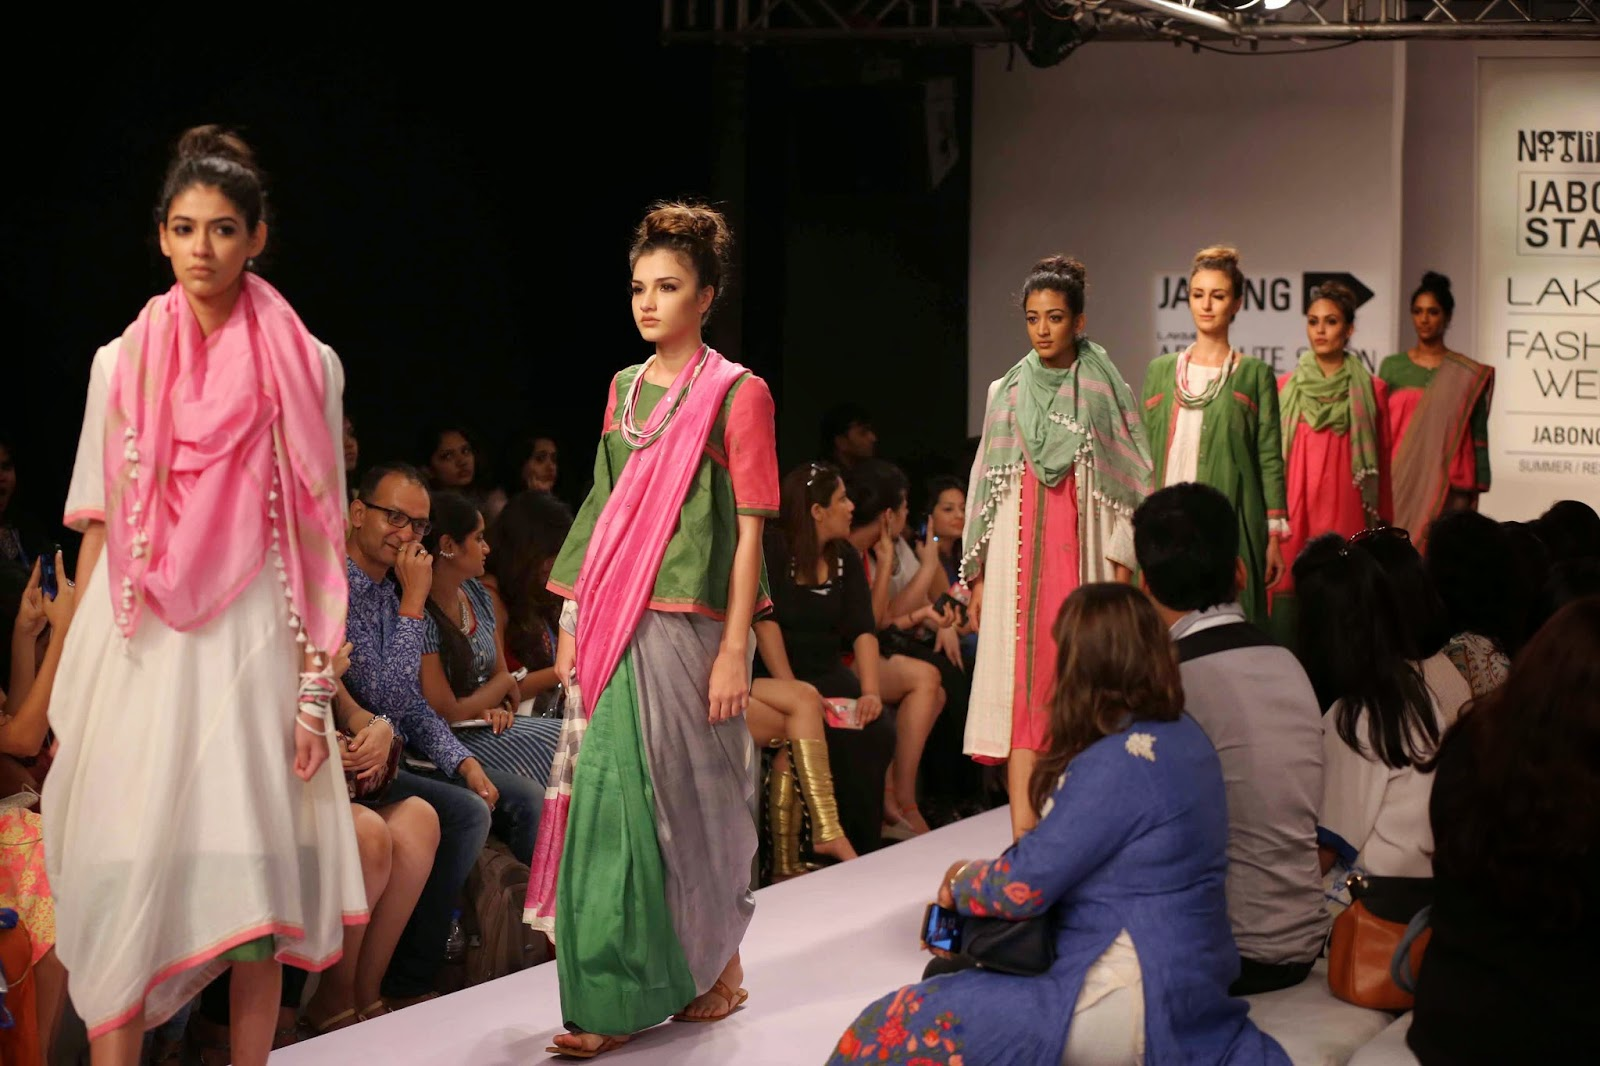 http://aquaintperspective.blogspot.in/, LIFW Day 2, Not like you